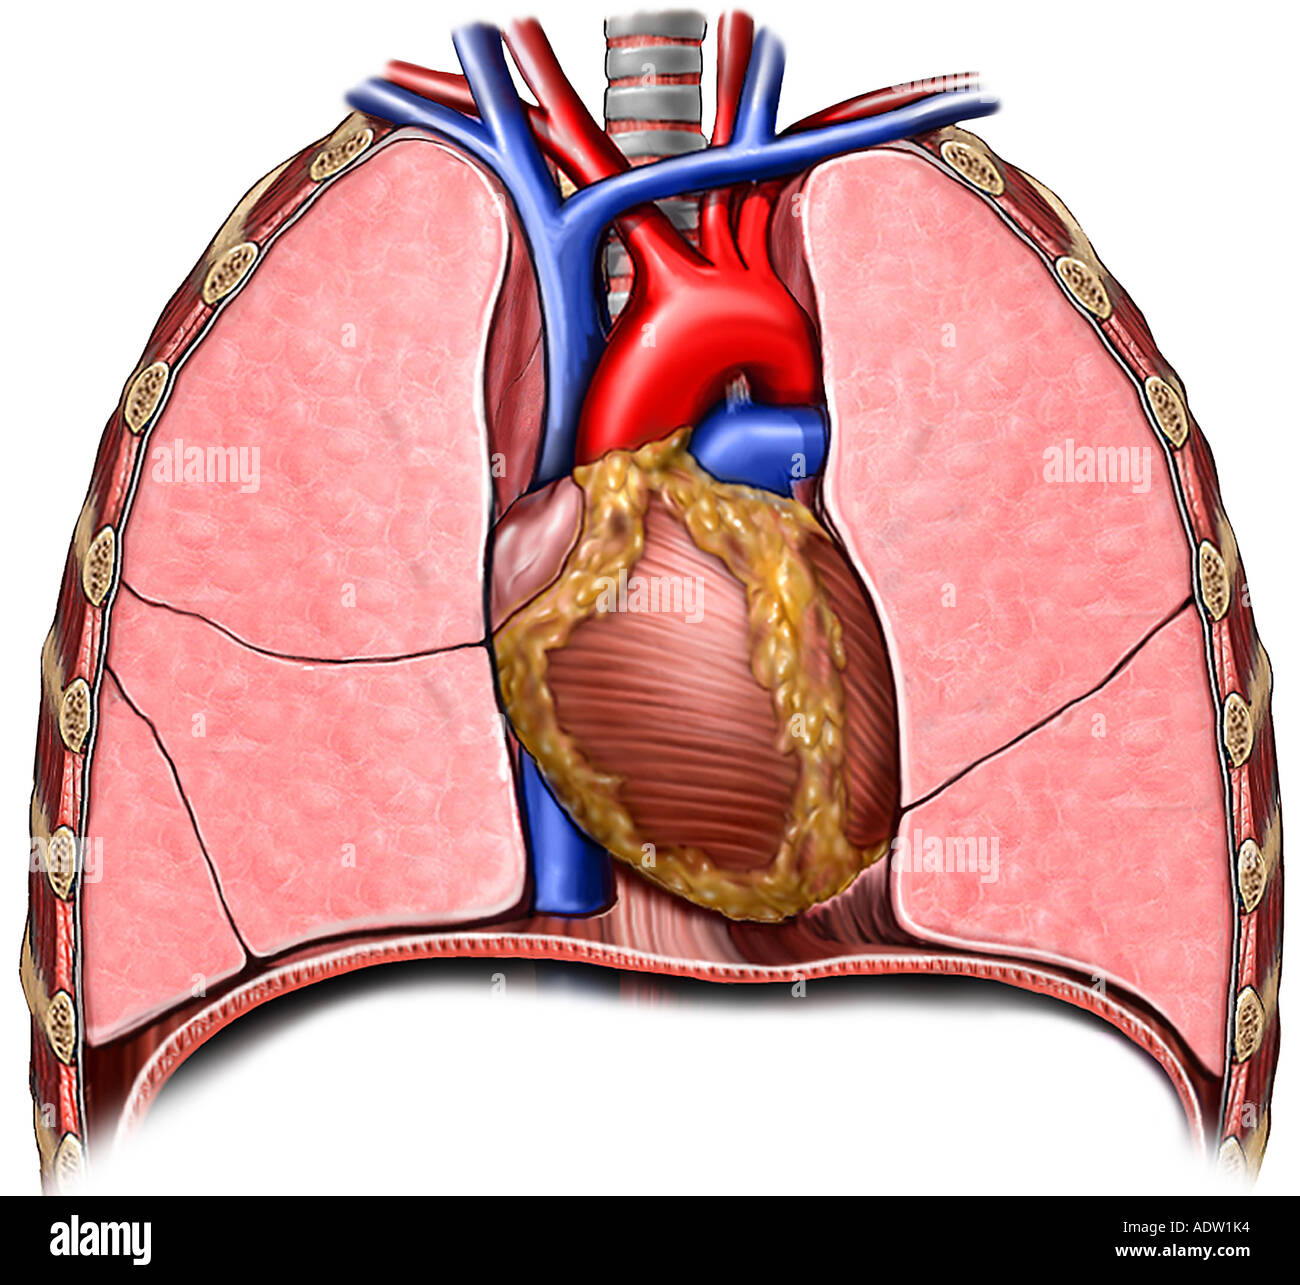 Organs Of The Thorax Stock Photos Organs Of The Thorax Stock